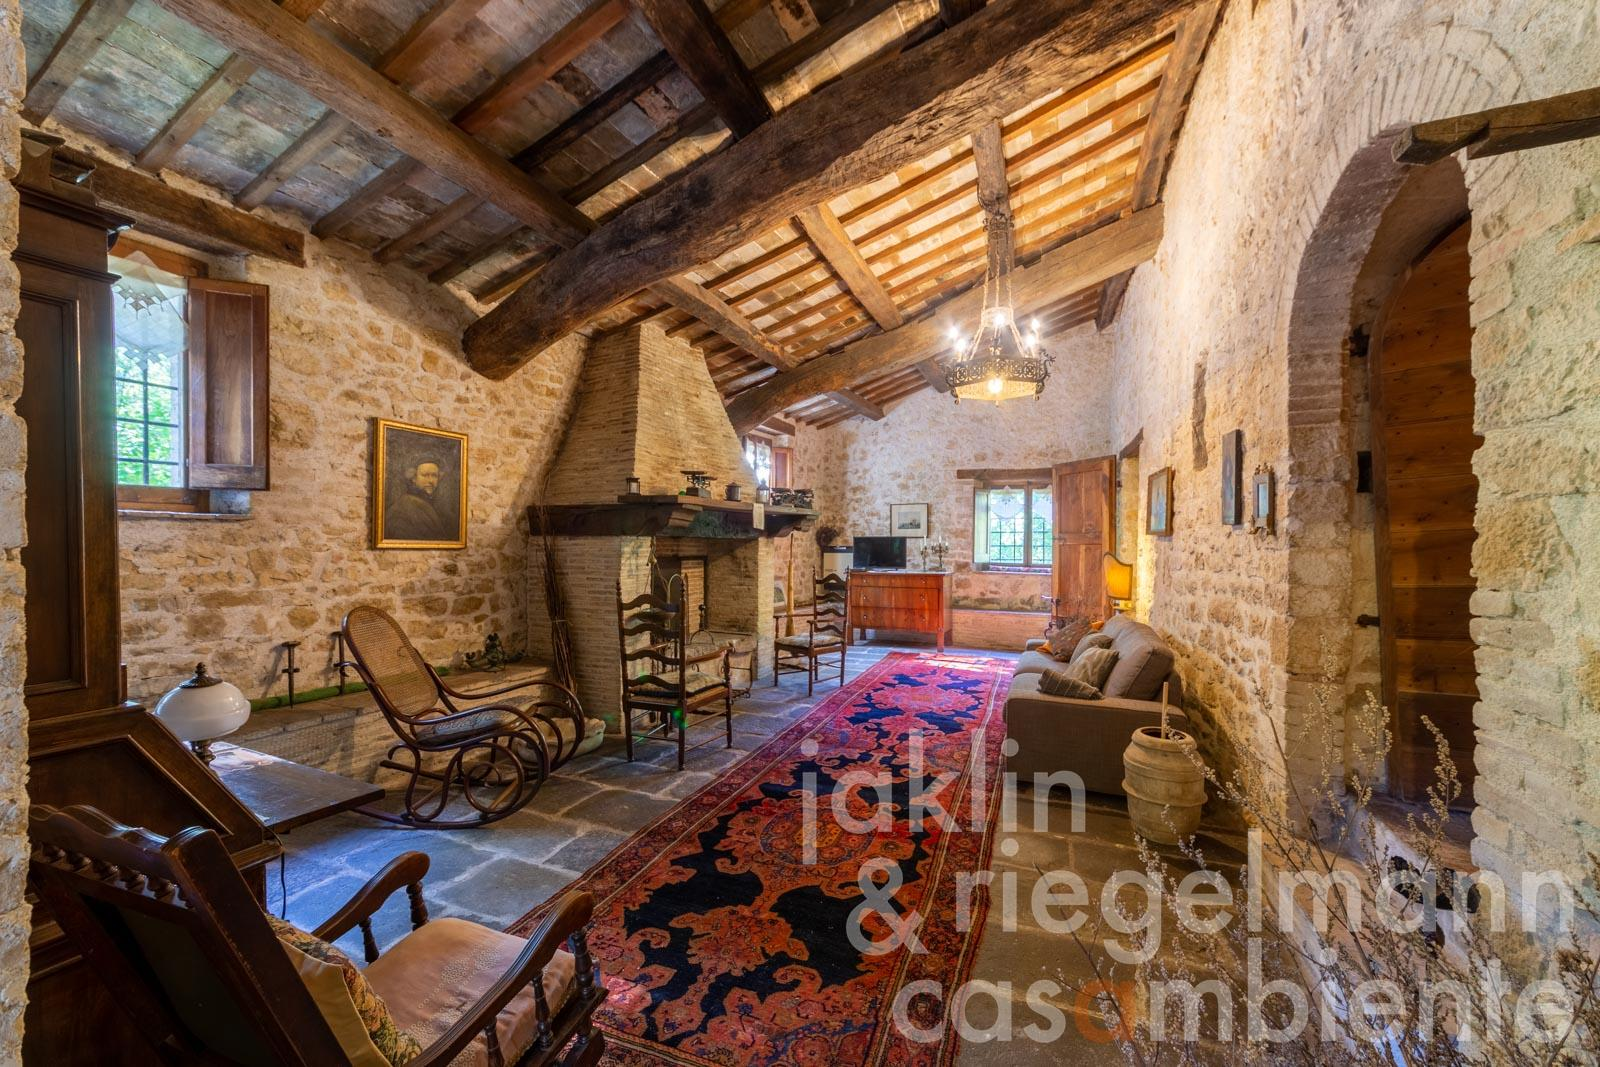 Farmhouse Rustico For Sale In Italy Umbria Perugia Foligno Old Stone Farmhouse With Tower And Annex Building Set In 22 Ha Of Land